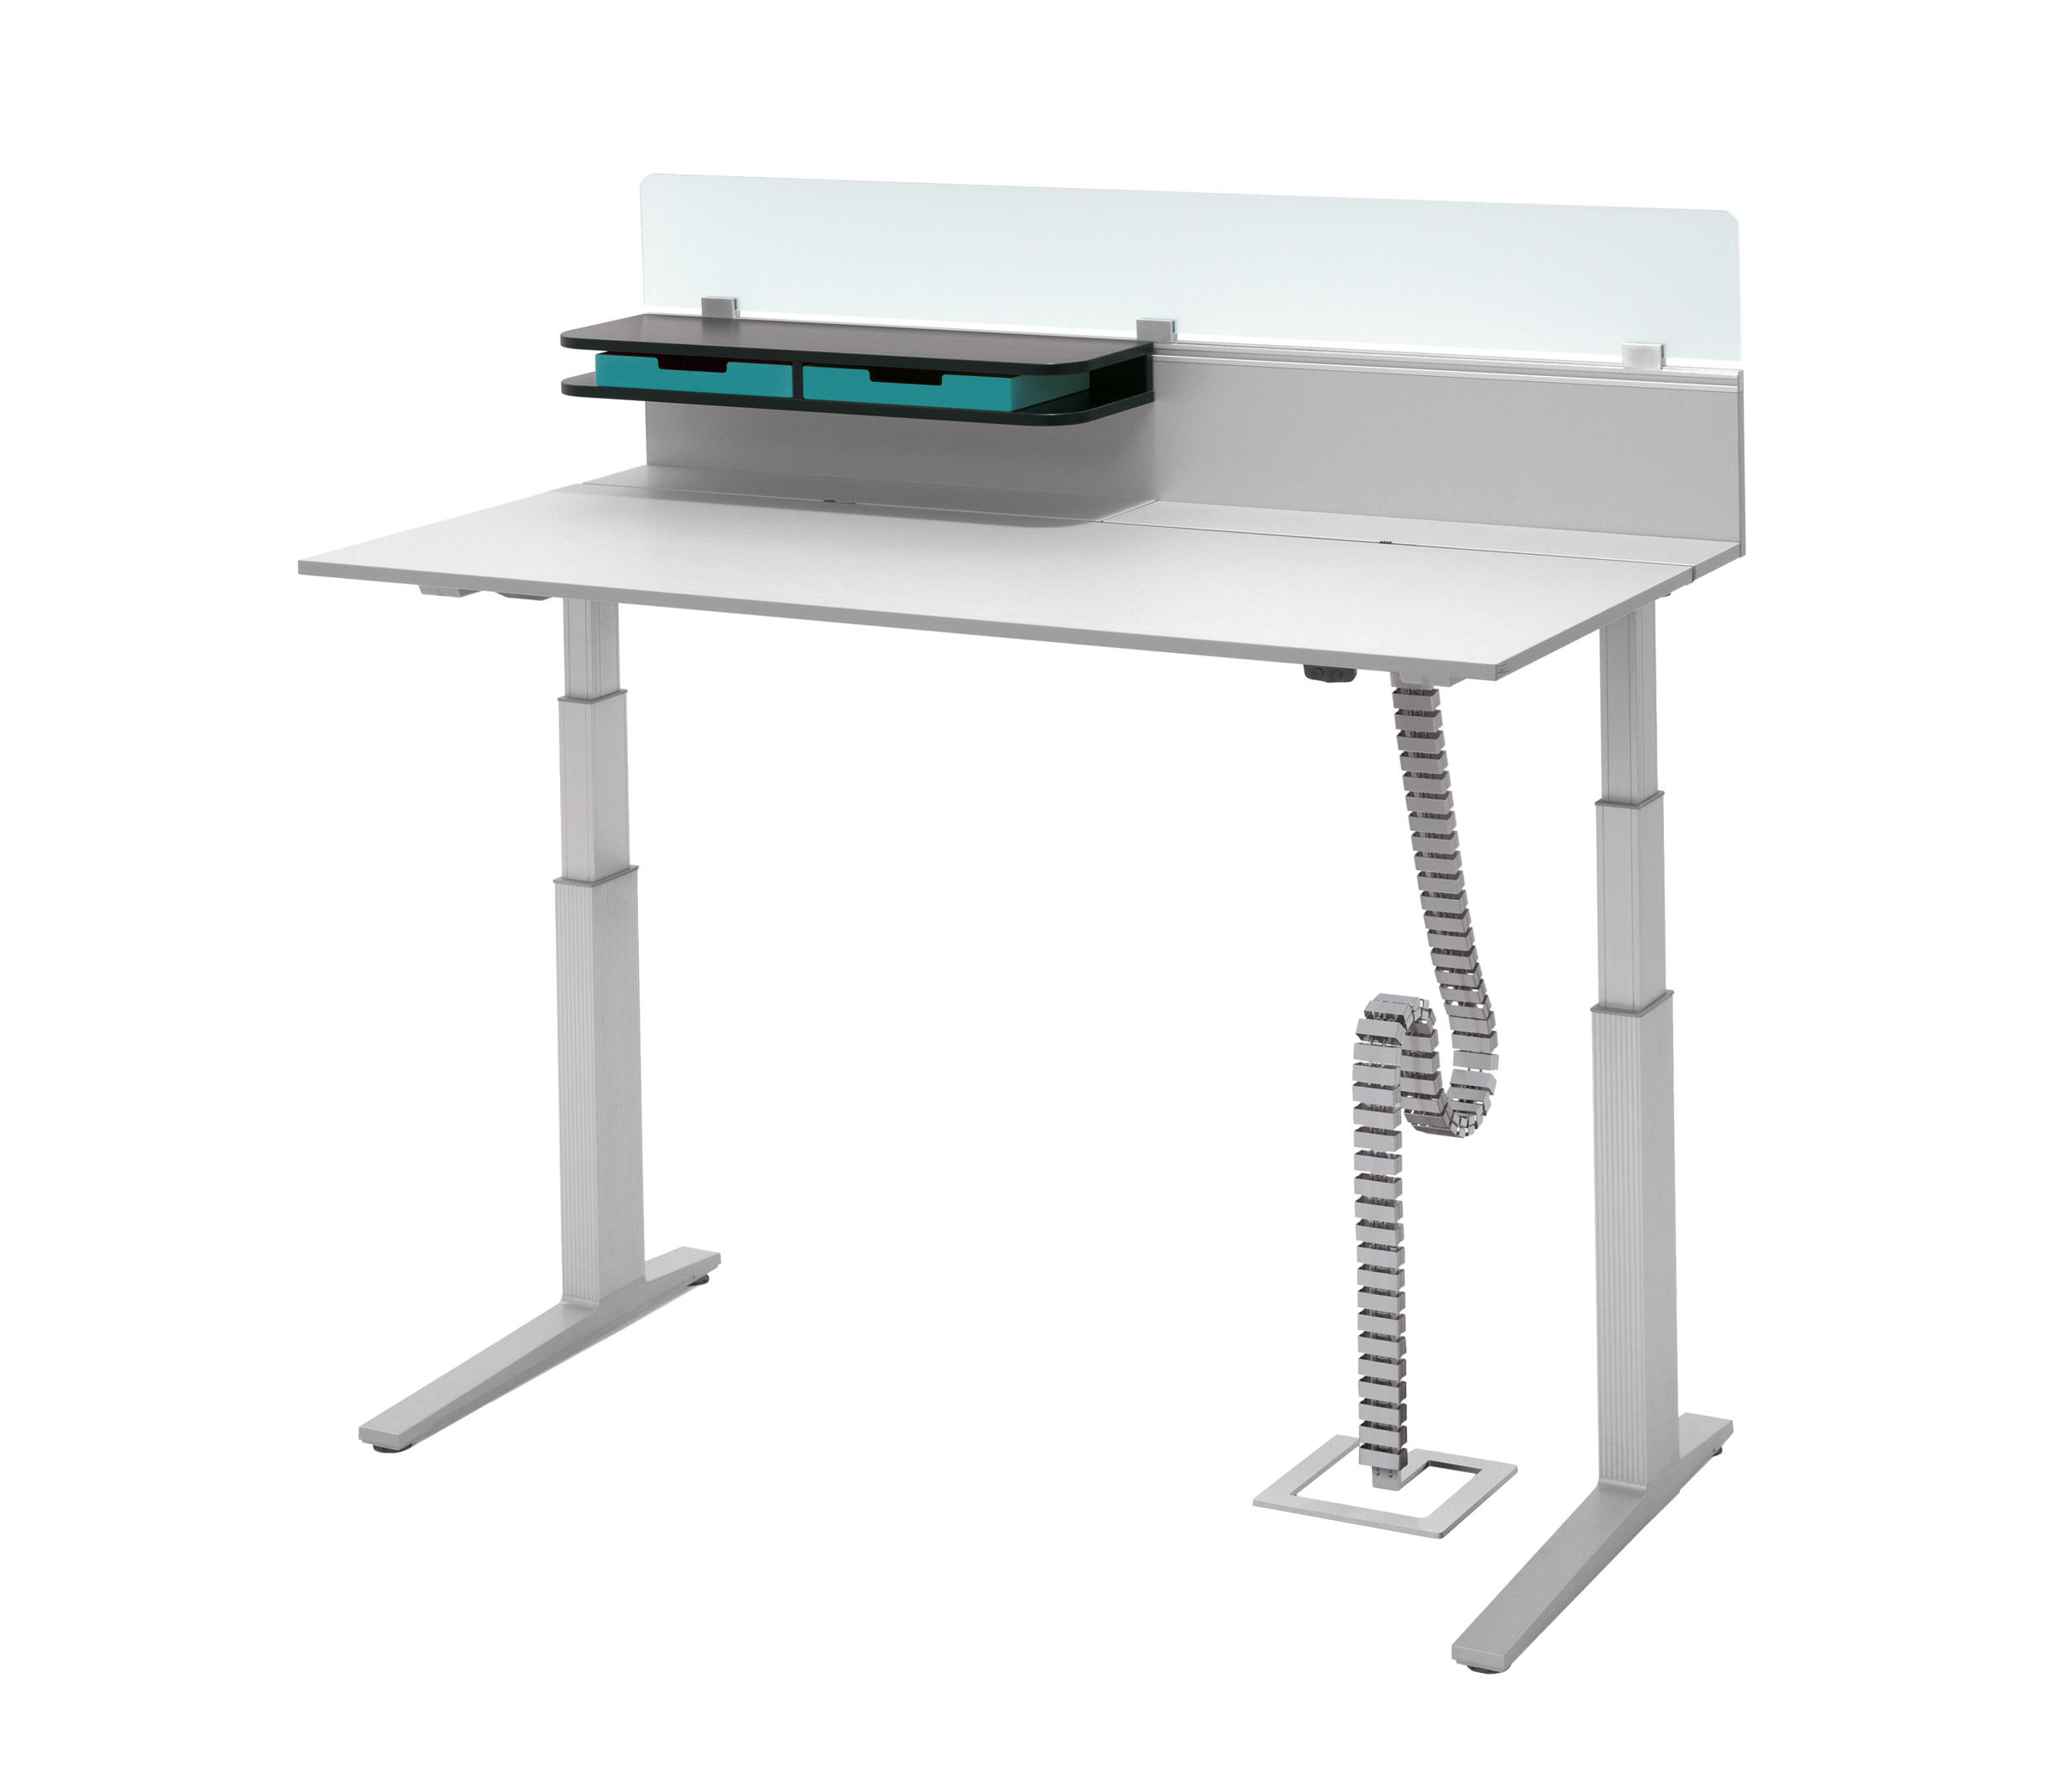 T Lift Desk By Bene Contract Tables